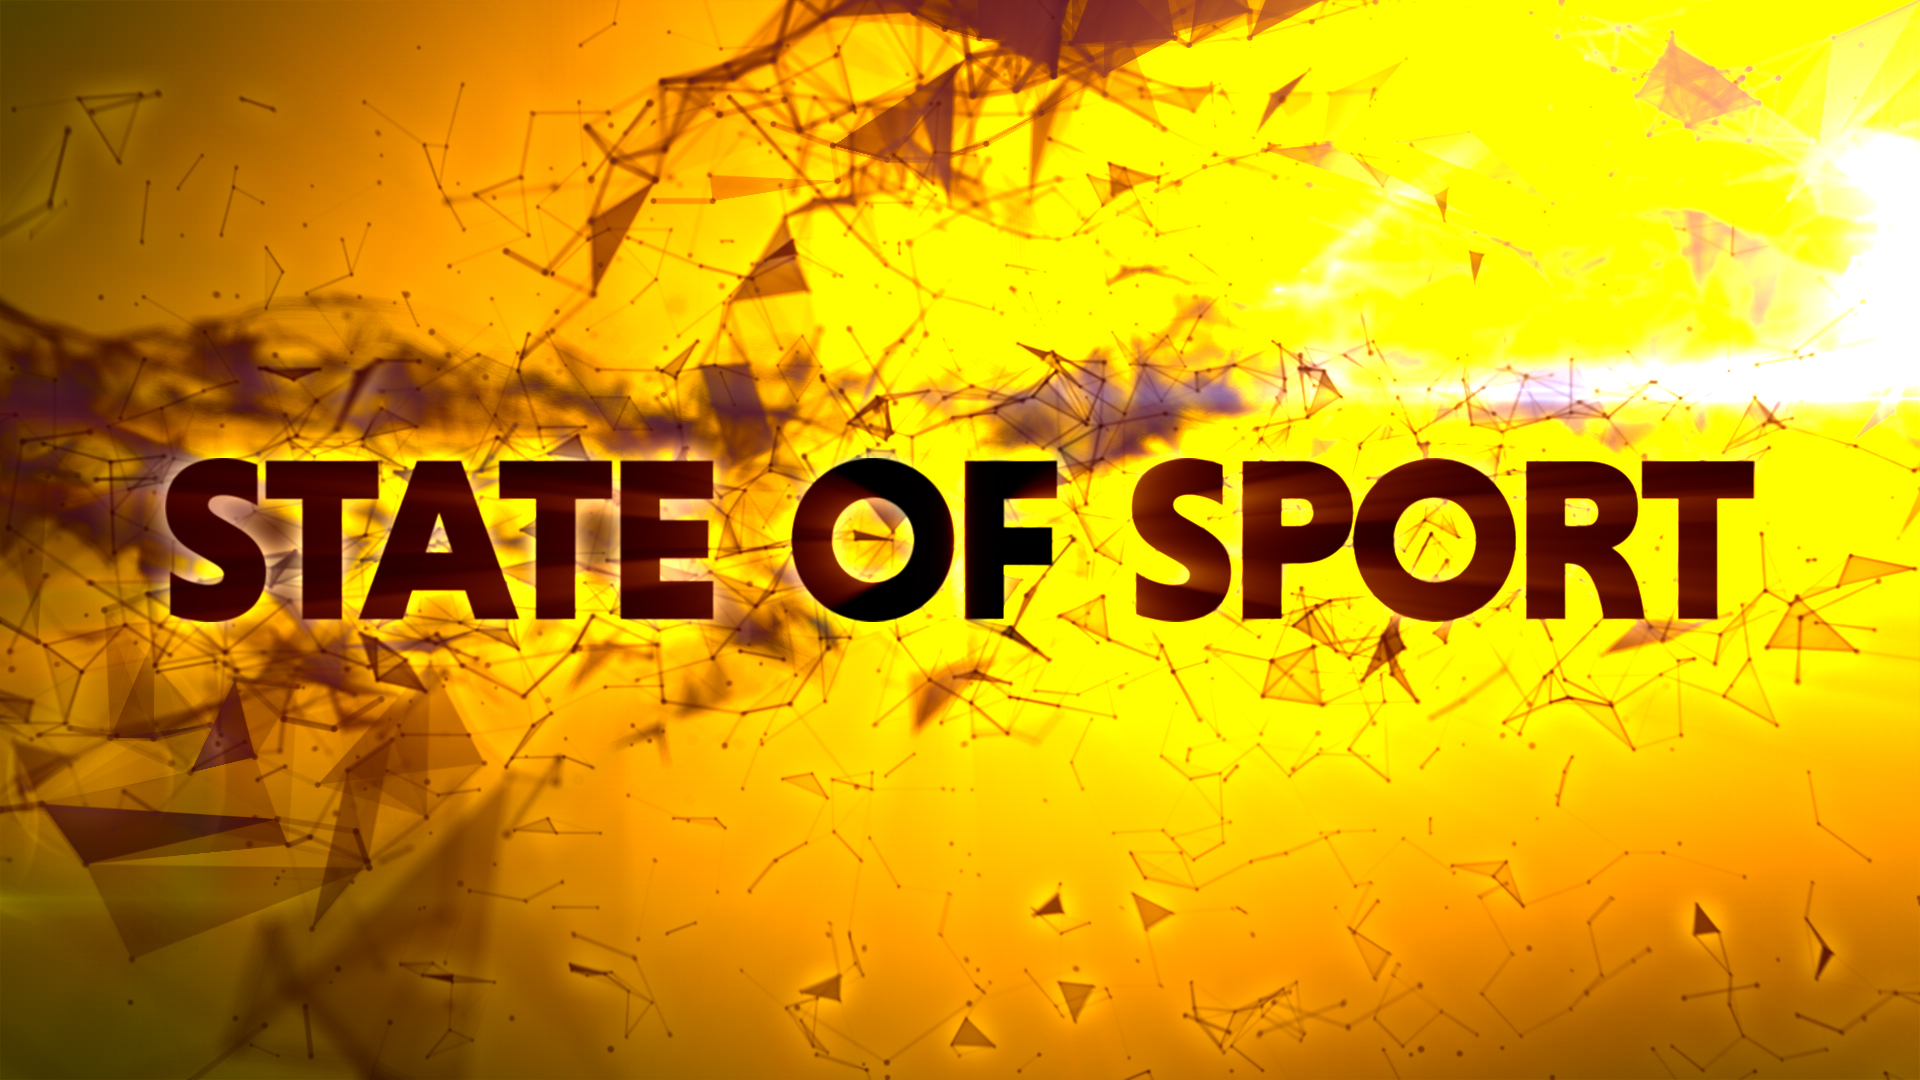 The BBCs State of Sport week